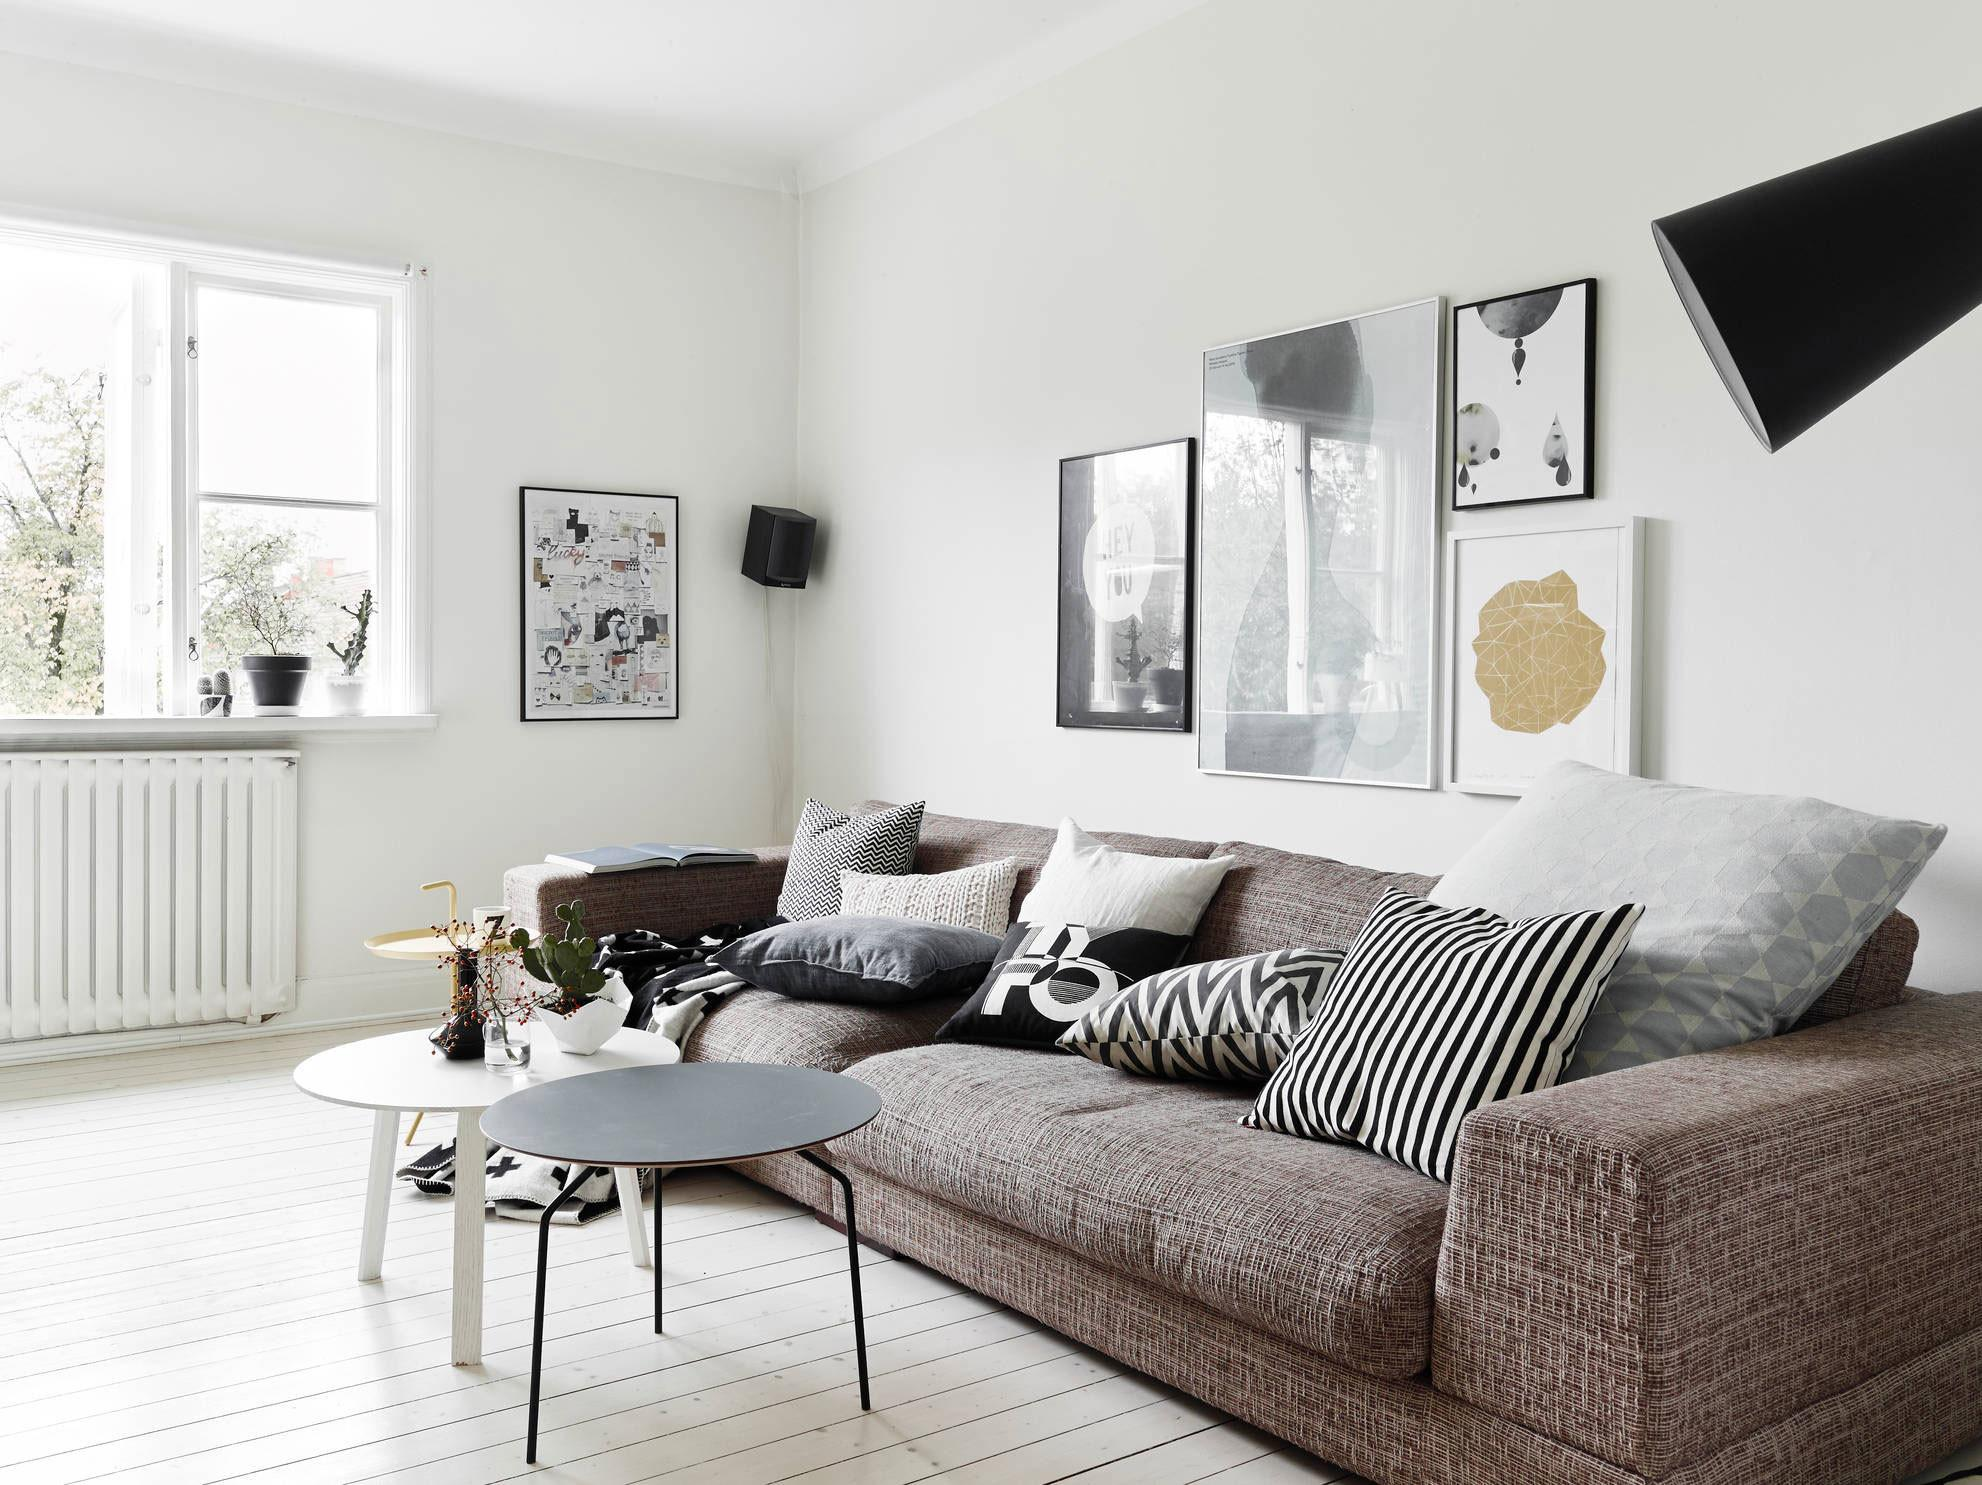 Scandinavian Interior Design Apartment Kungsladug Rds